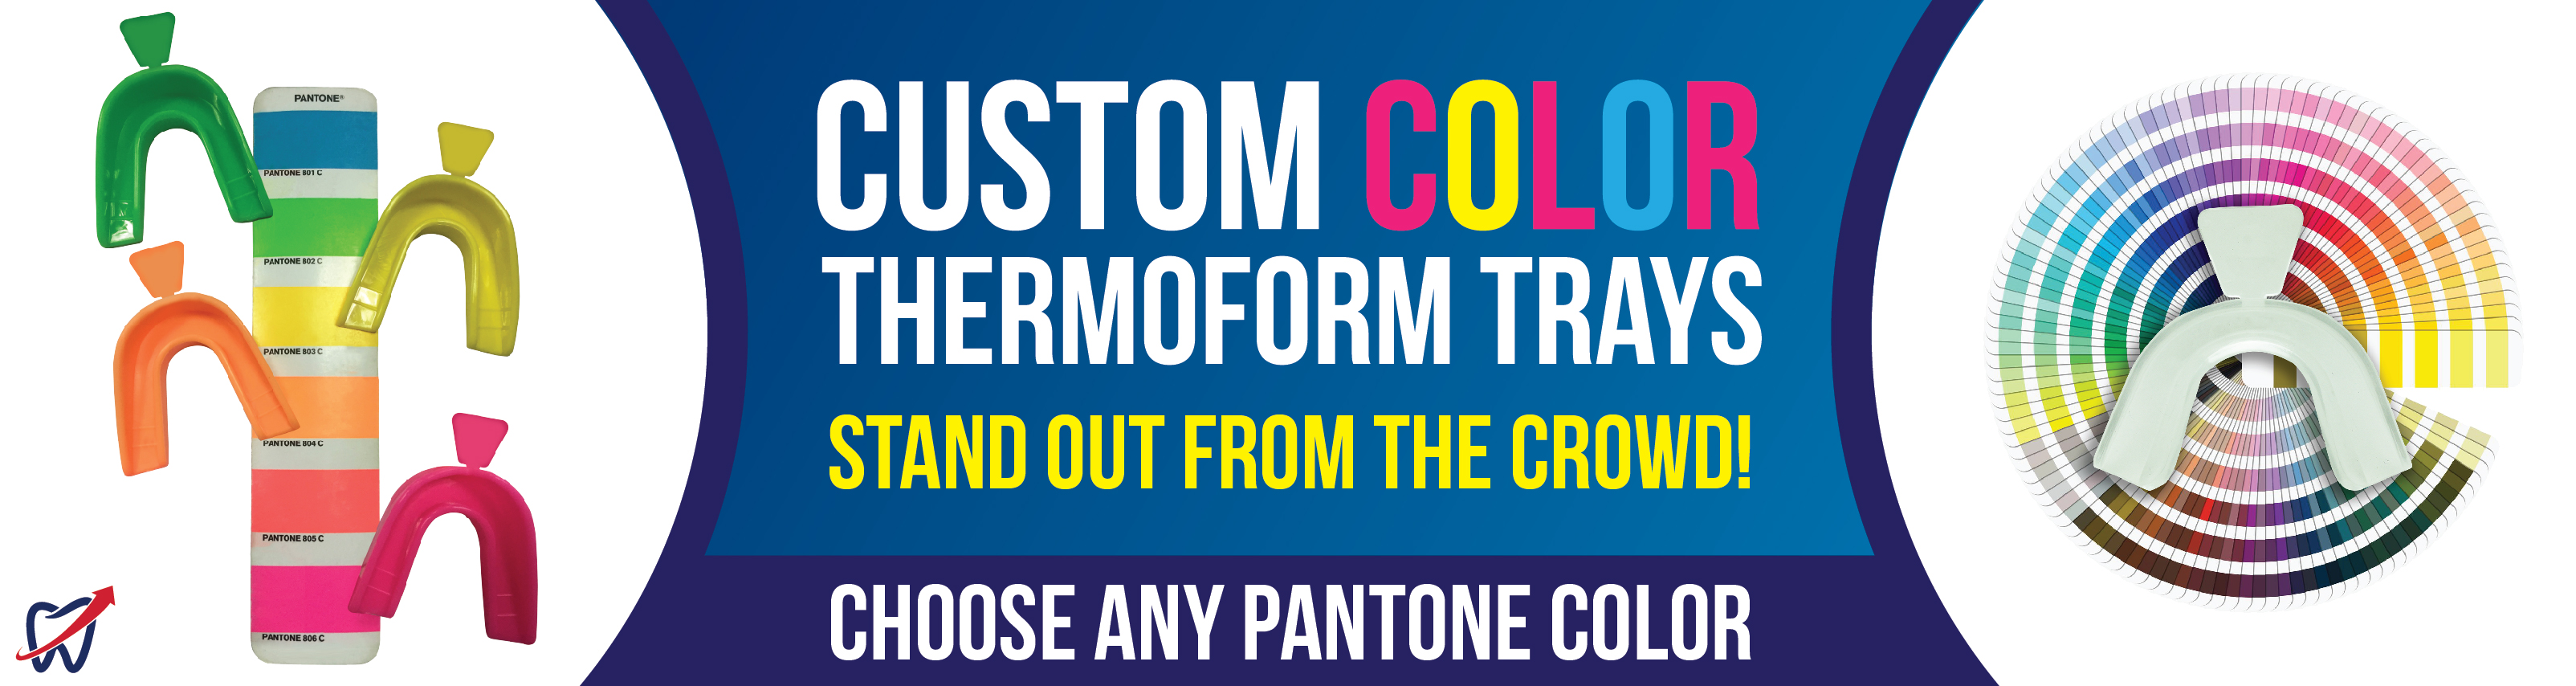 Colored Trays USA Banner